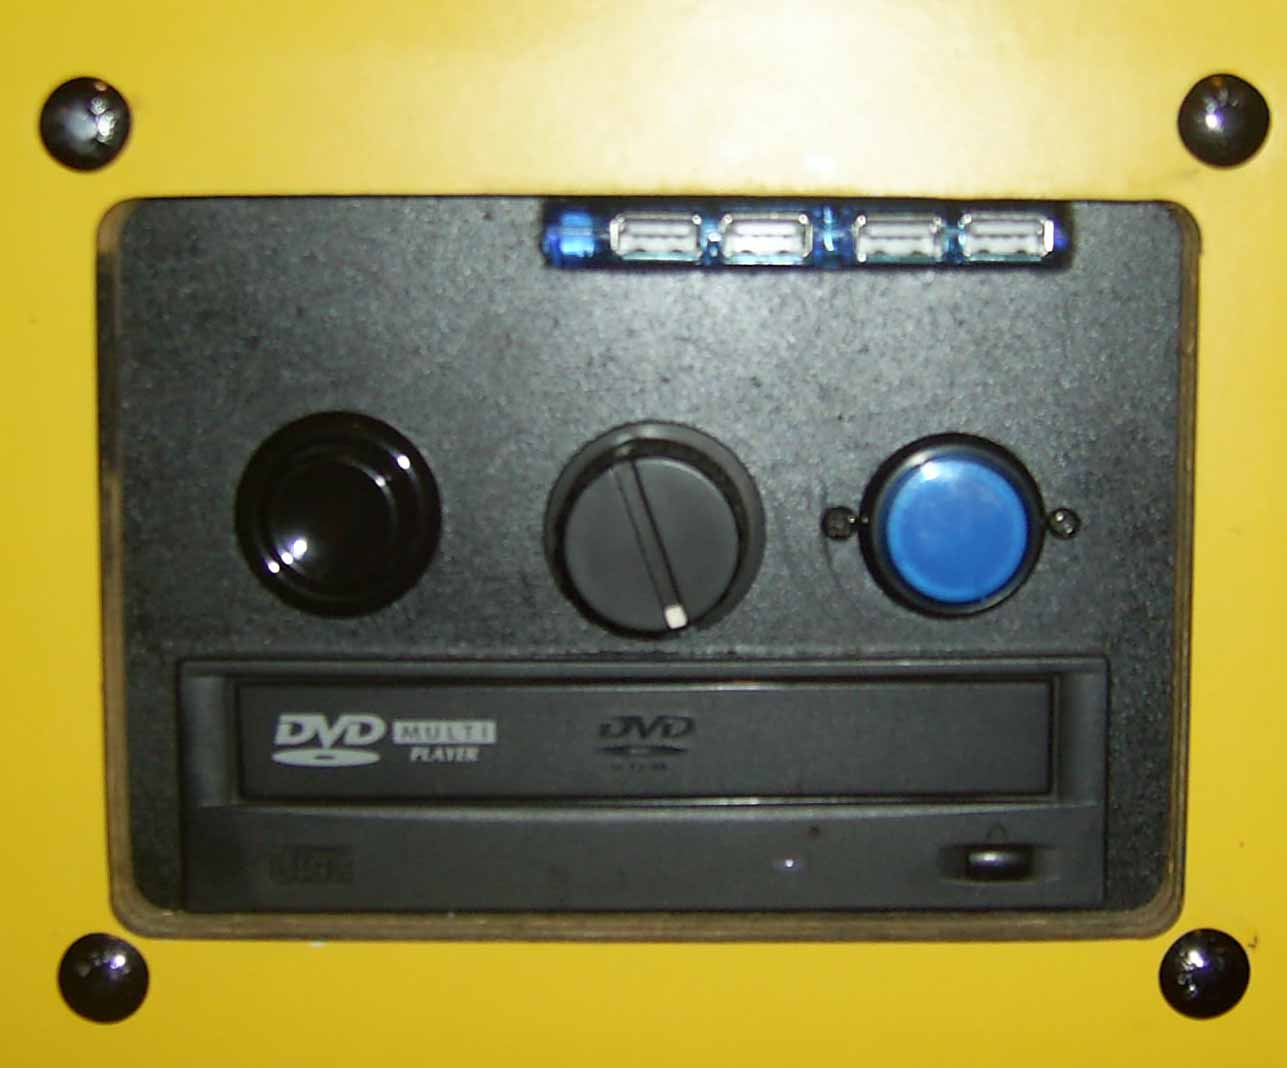 Control panel with DVD player